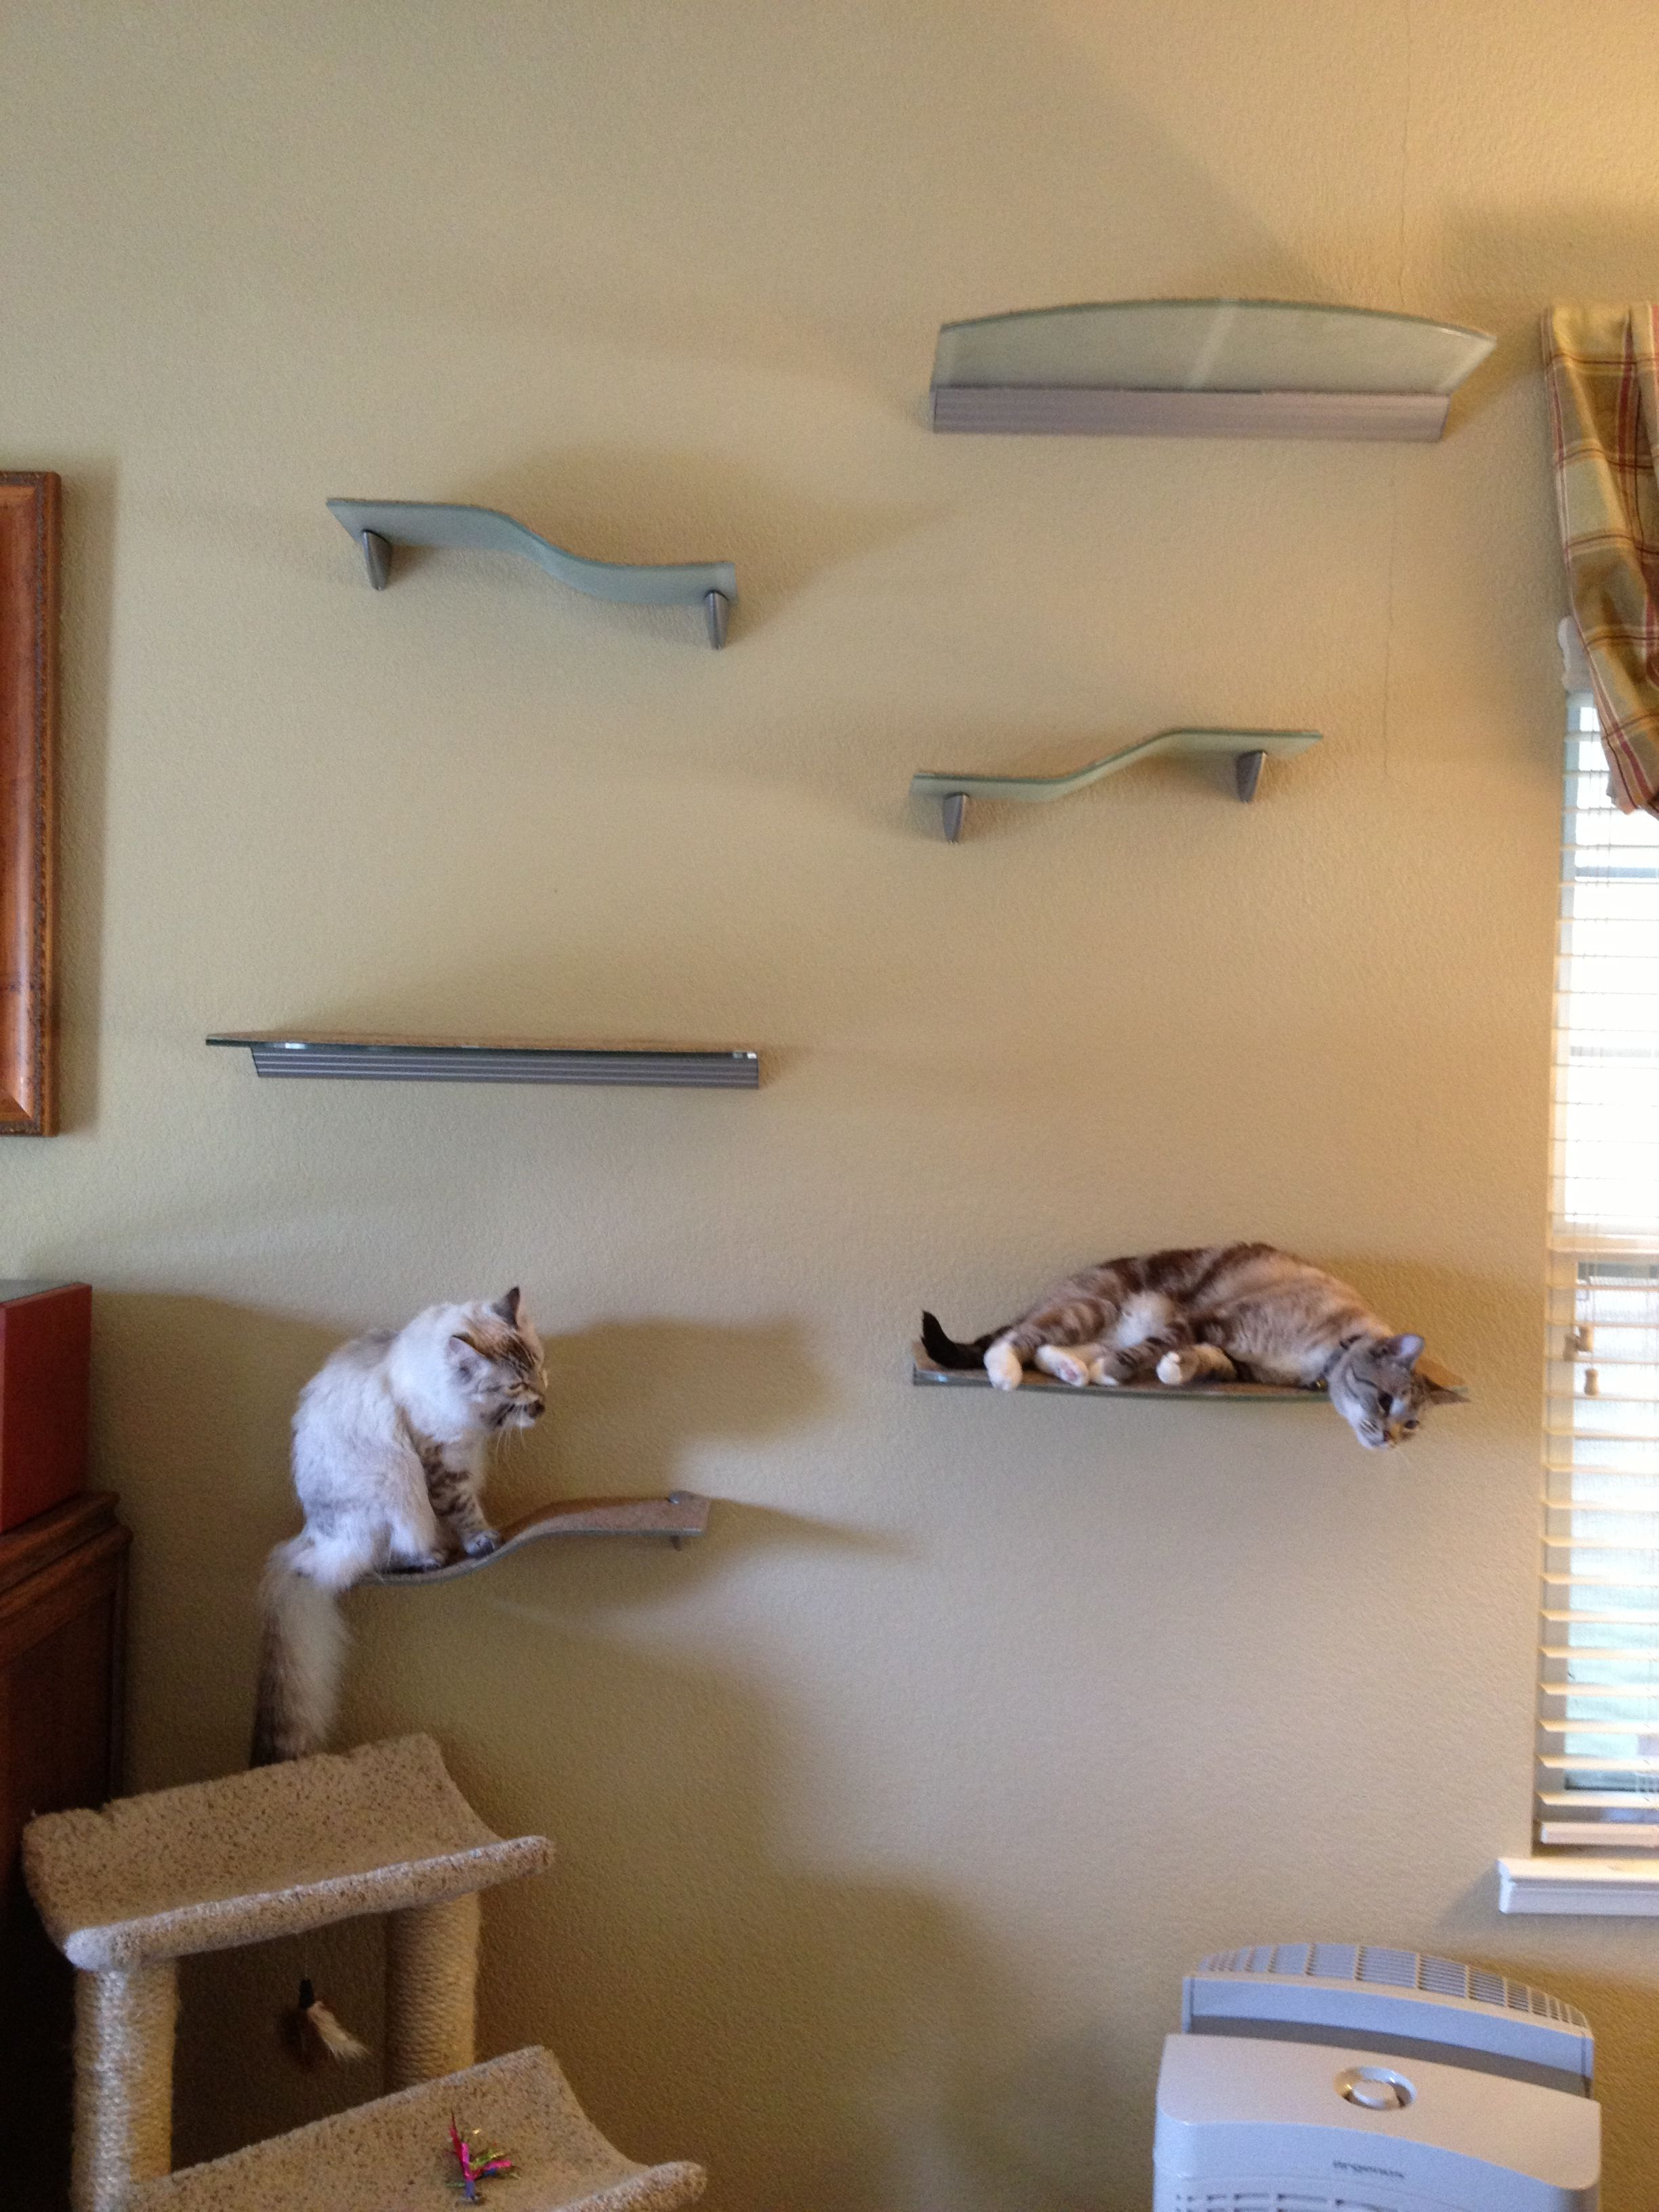 My cool cat climbing wall made with glass shelves from Home Depot